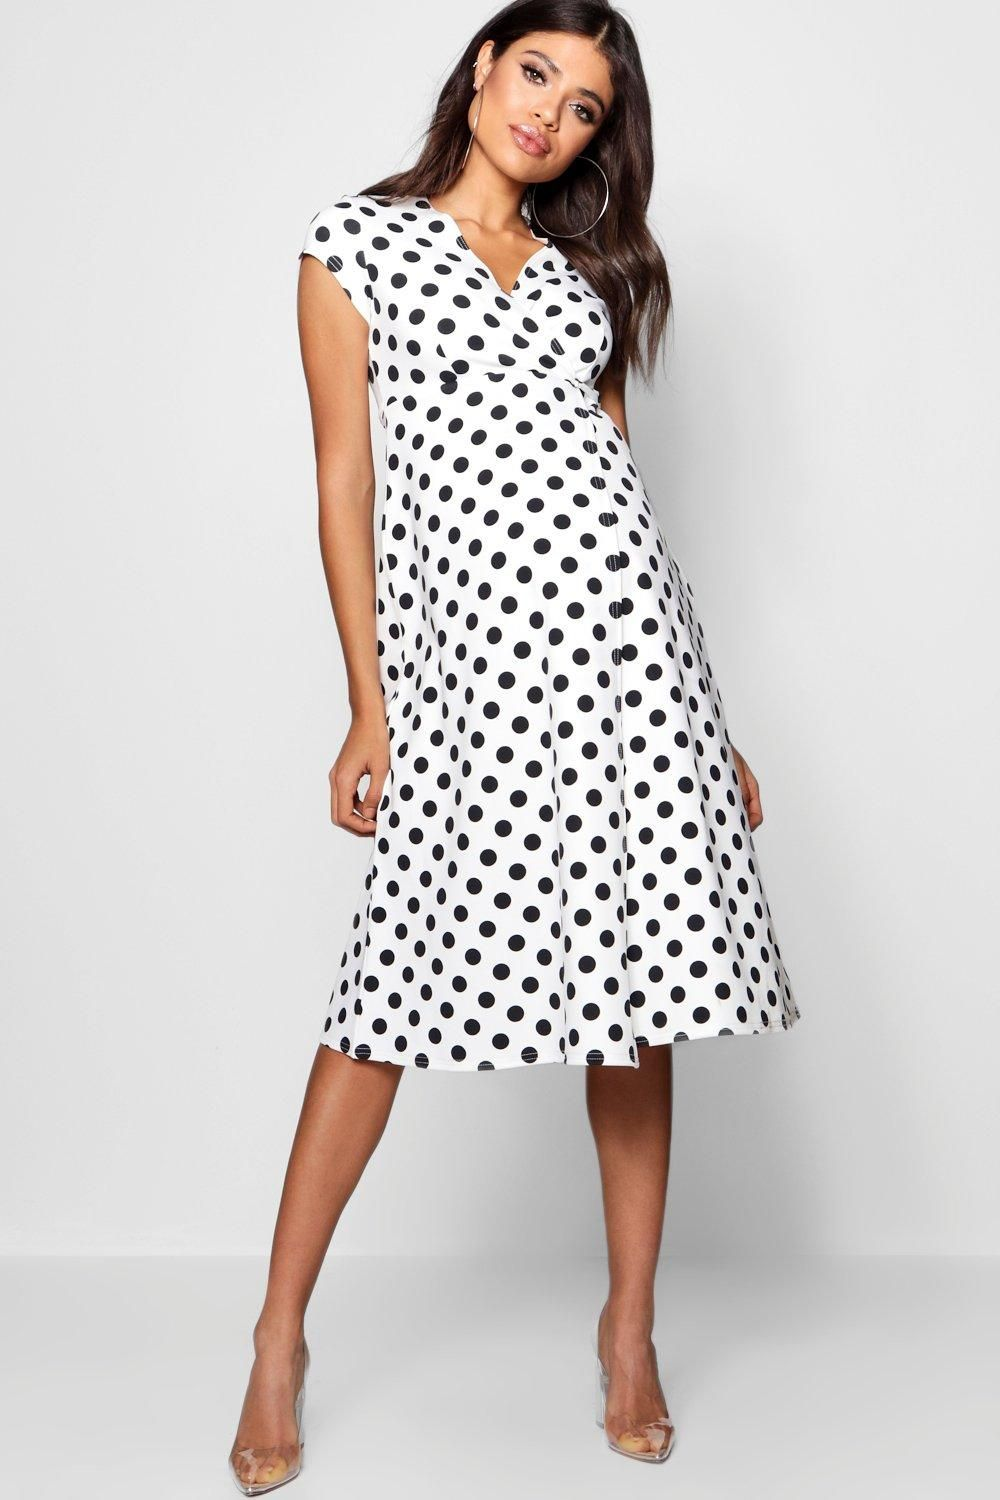 Terracotta Maternity Polka Dot Wrap Dress Boohoo Uk Stylish Maternity Outfits Maternity Clothes Going Out Dresses